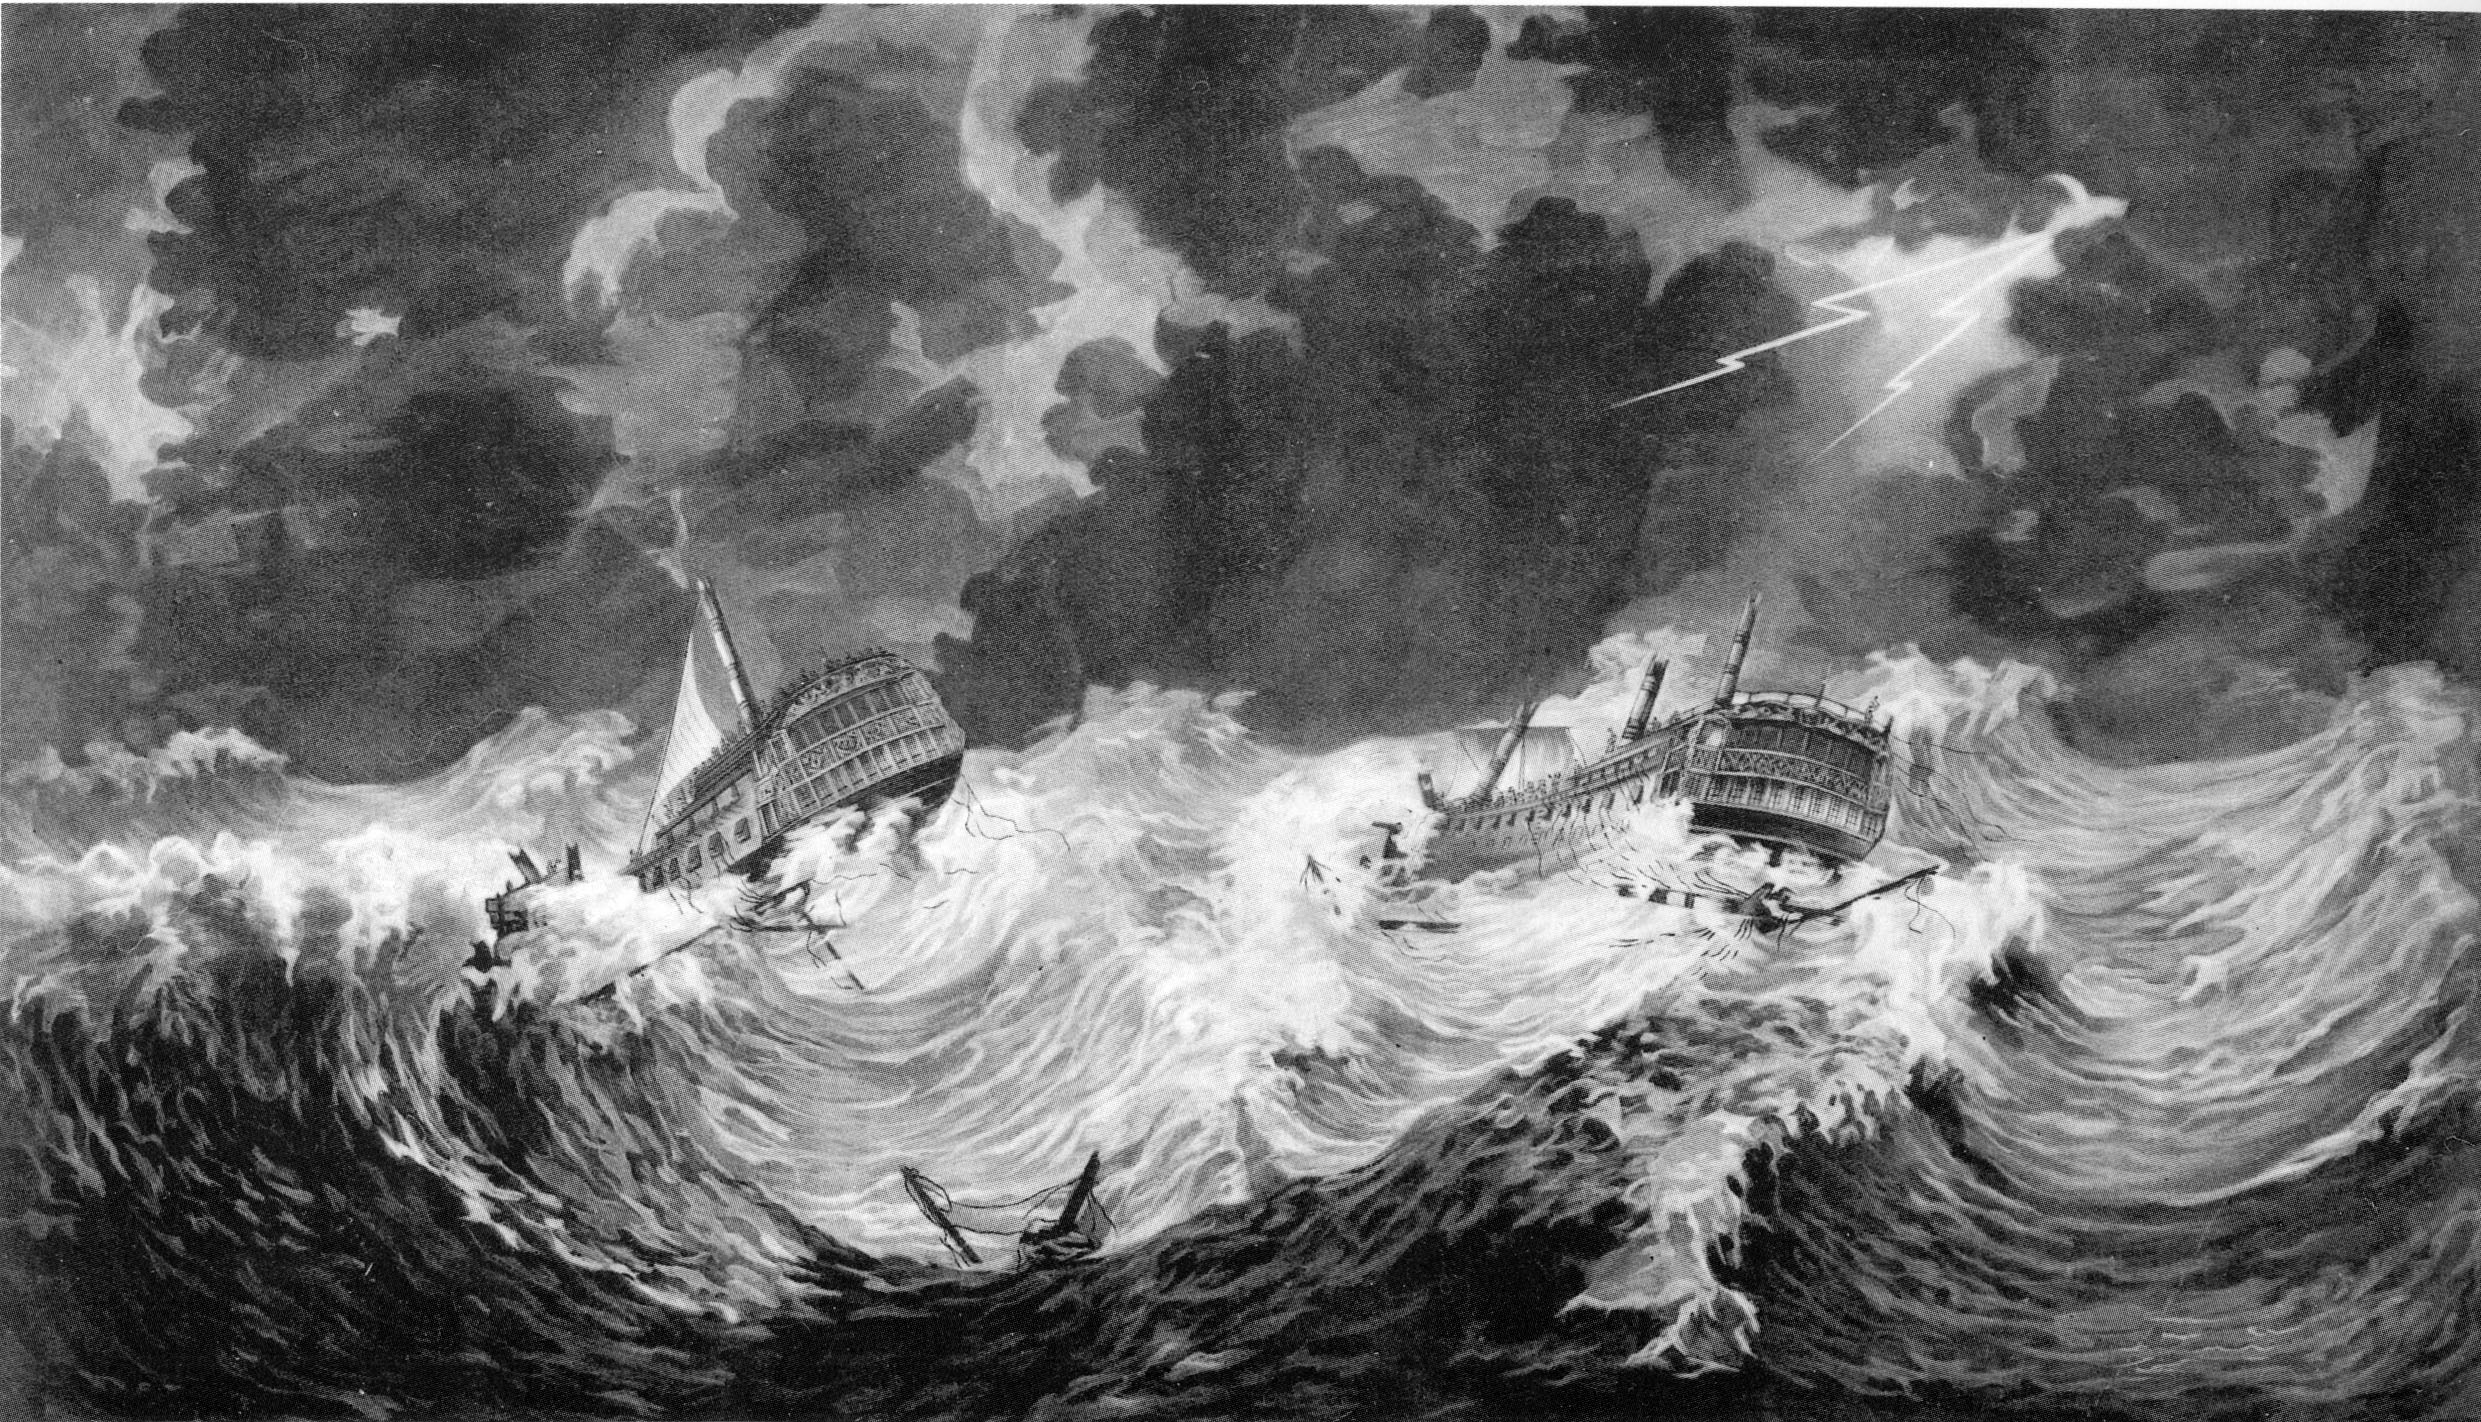 Worst hurricanes - Great Hurricane of 1780